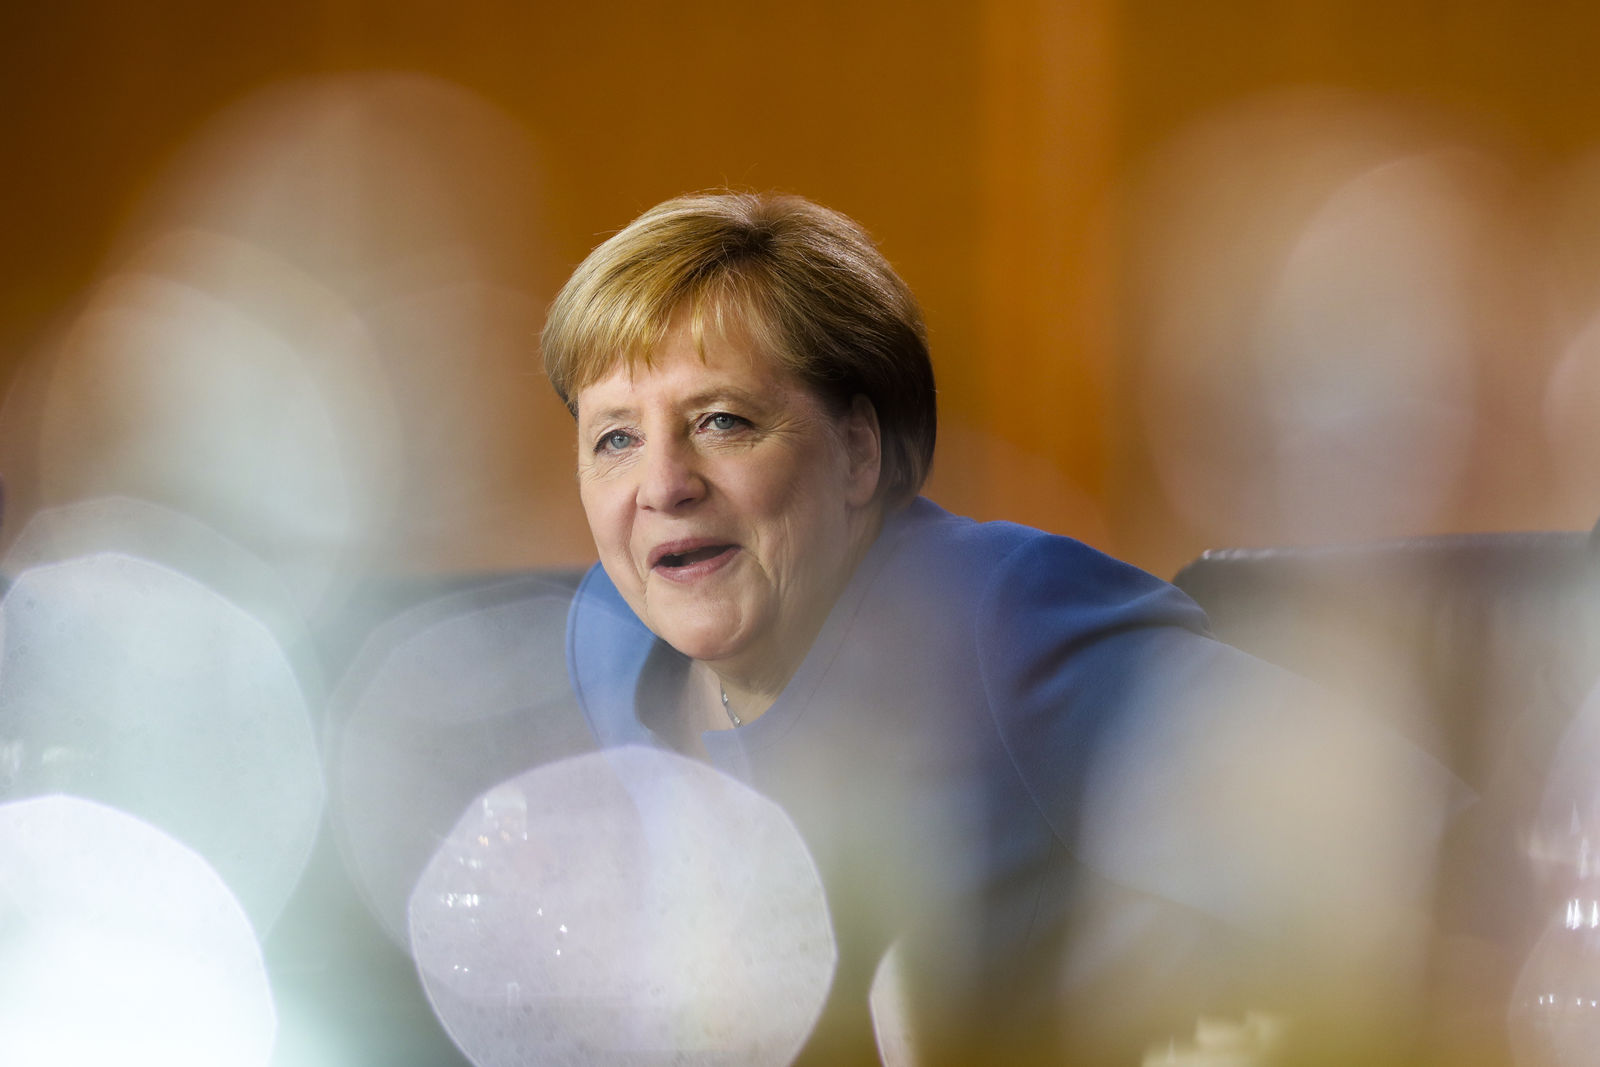 German Chancellor Angela Merkel arrives for a meeting of the called Climate Cabinet at the chancellery in Berlin, Germany, Friday, Sept. 20, 2019. (AP Photo/Markus Schreiber)